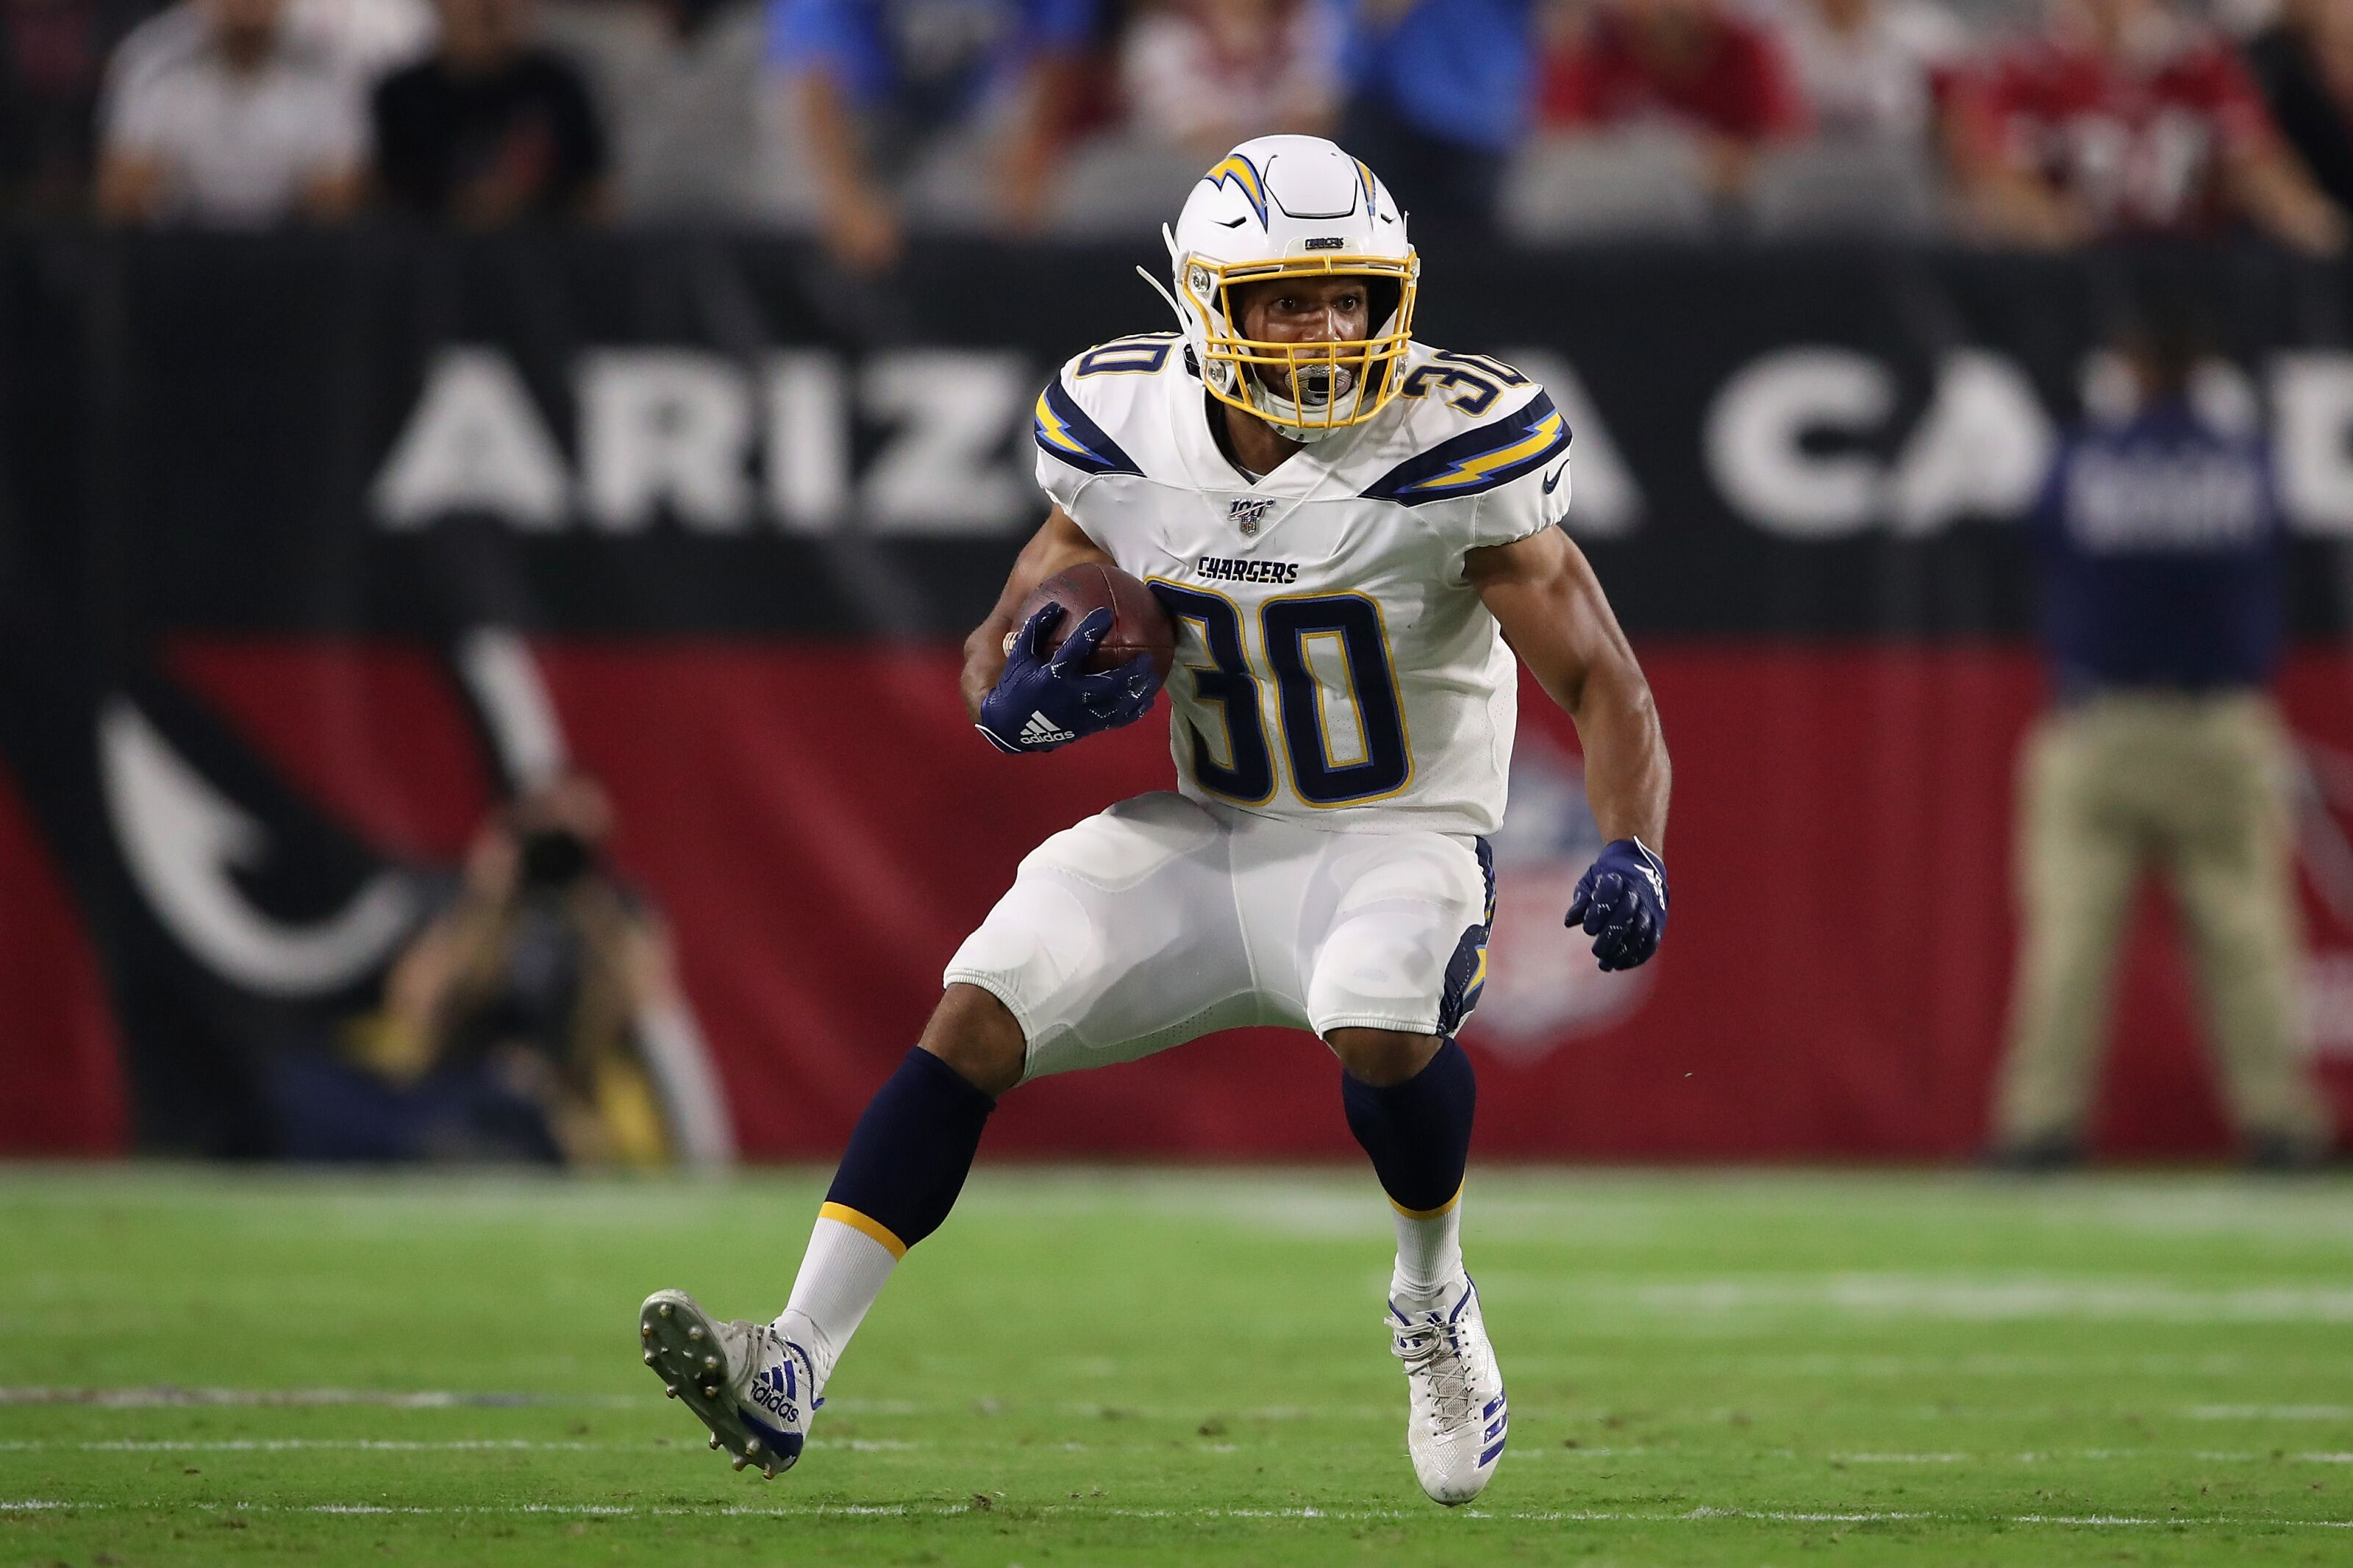 98fec9c5 Los Angeles Chargers: Is Austin Ekeler a reliable fantasy football ...